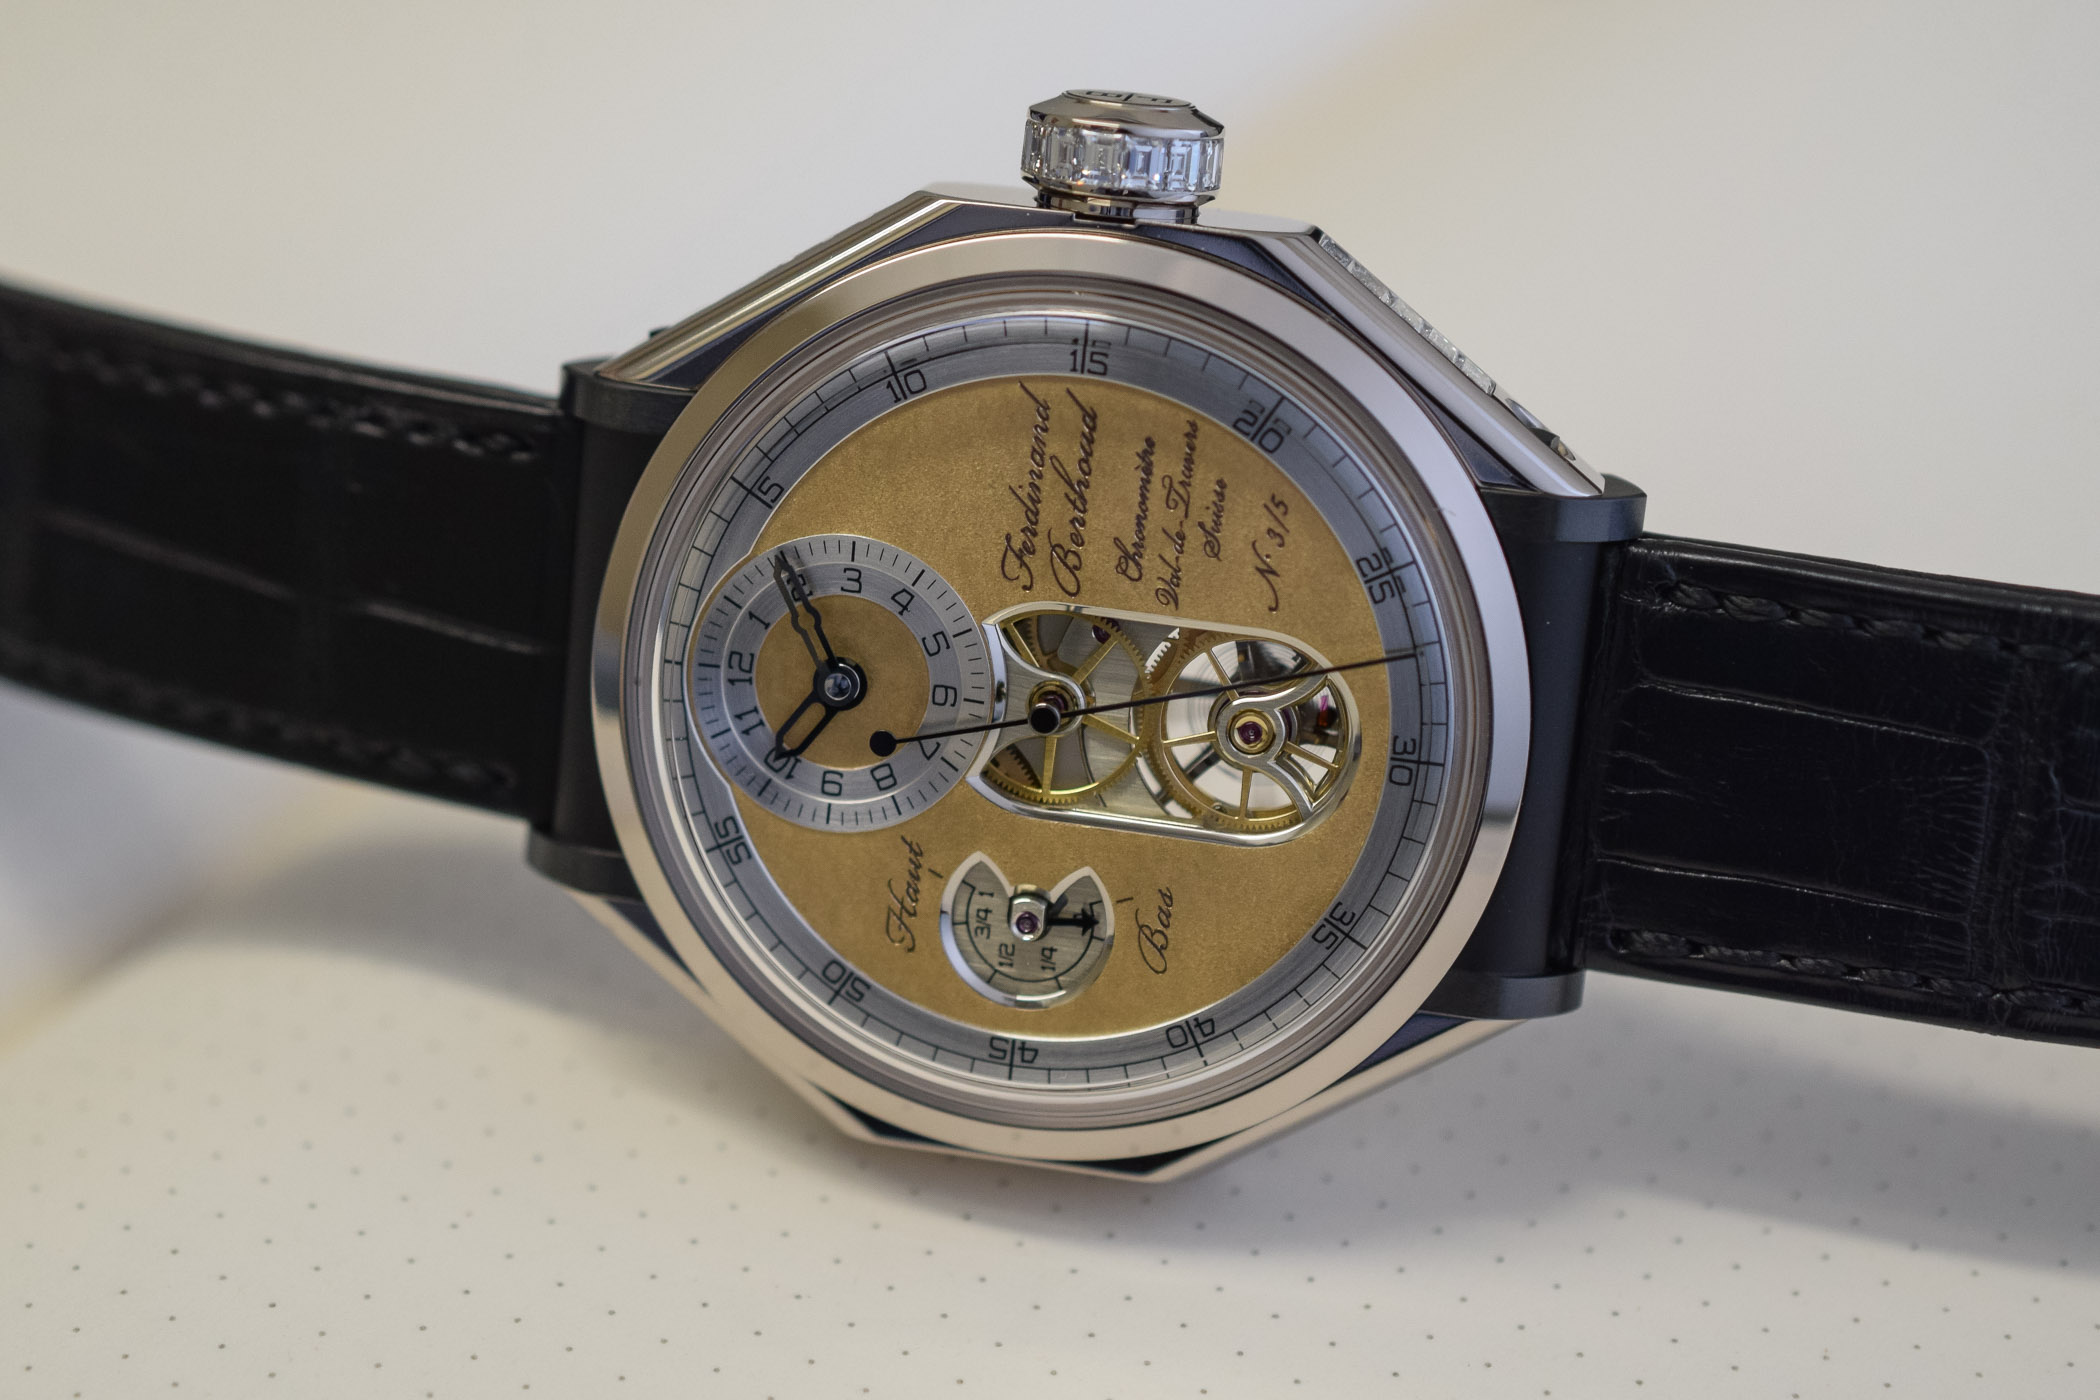 Ferdinand Berthoud Oeuvre d'or Collection Chronometre FB1 SIHH 2019 - 1